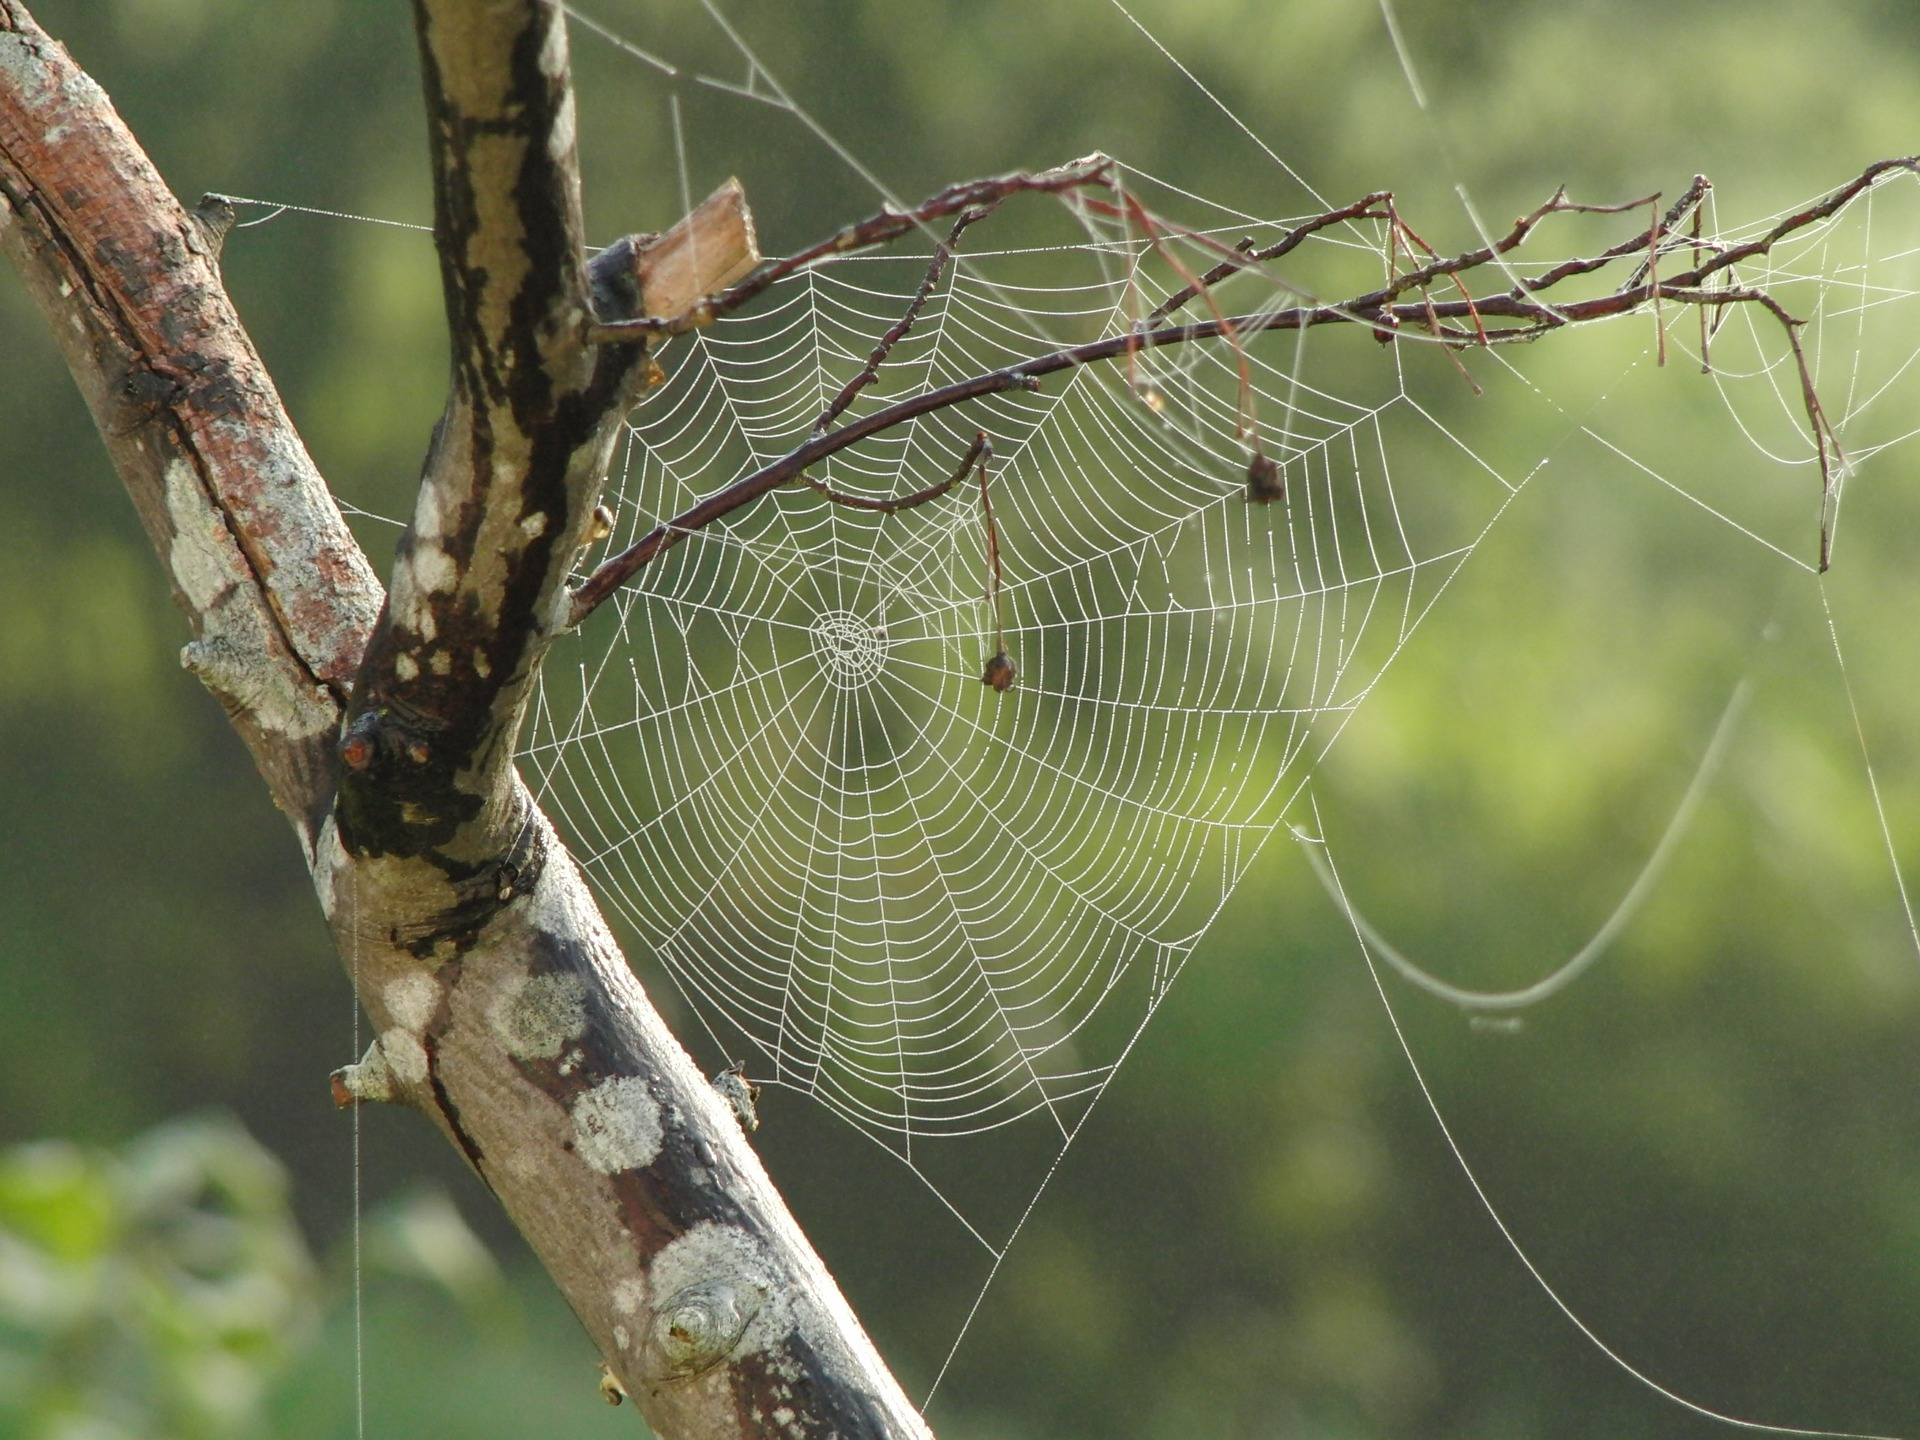 """ Spider, Web, Tree, Branches "" by  skeeze  is  Public Domain ."